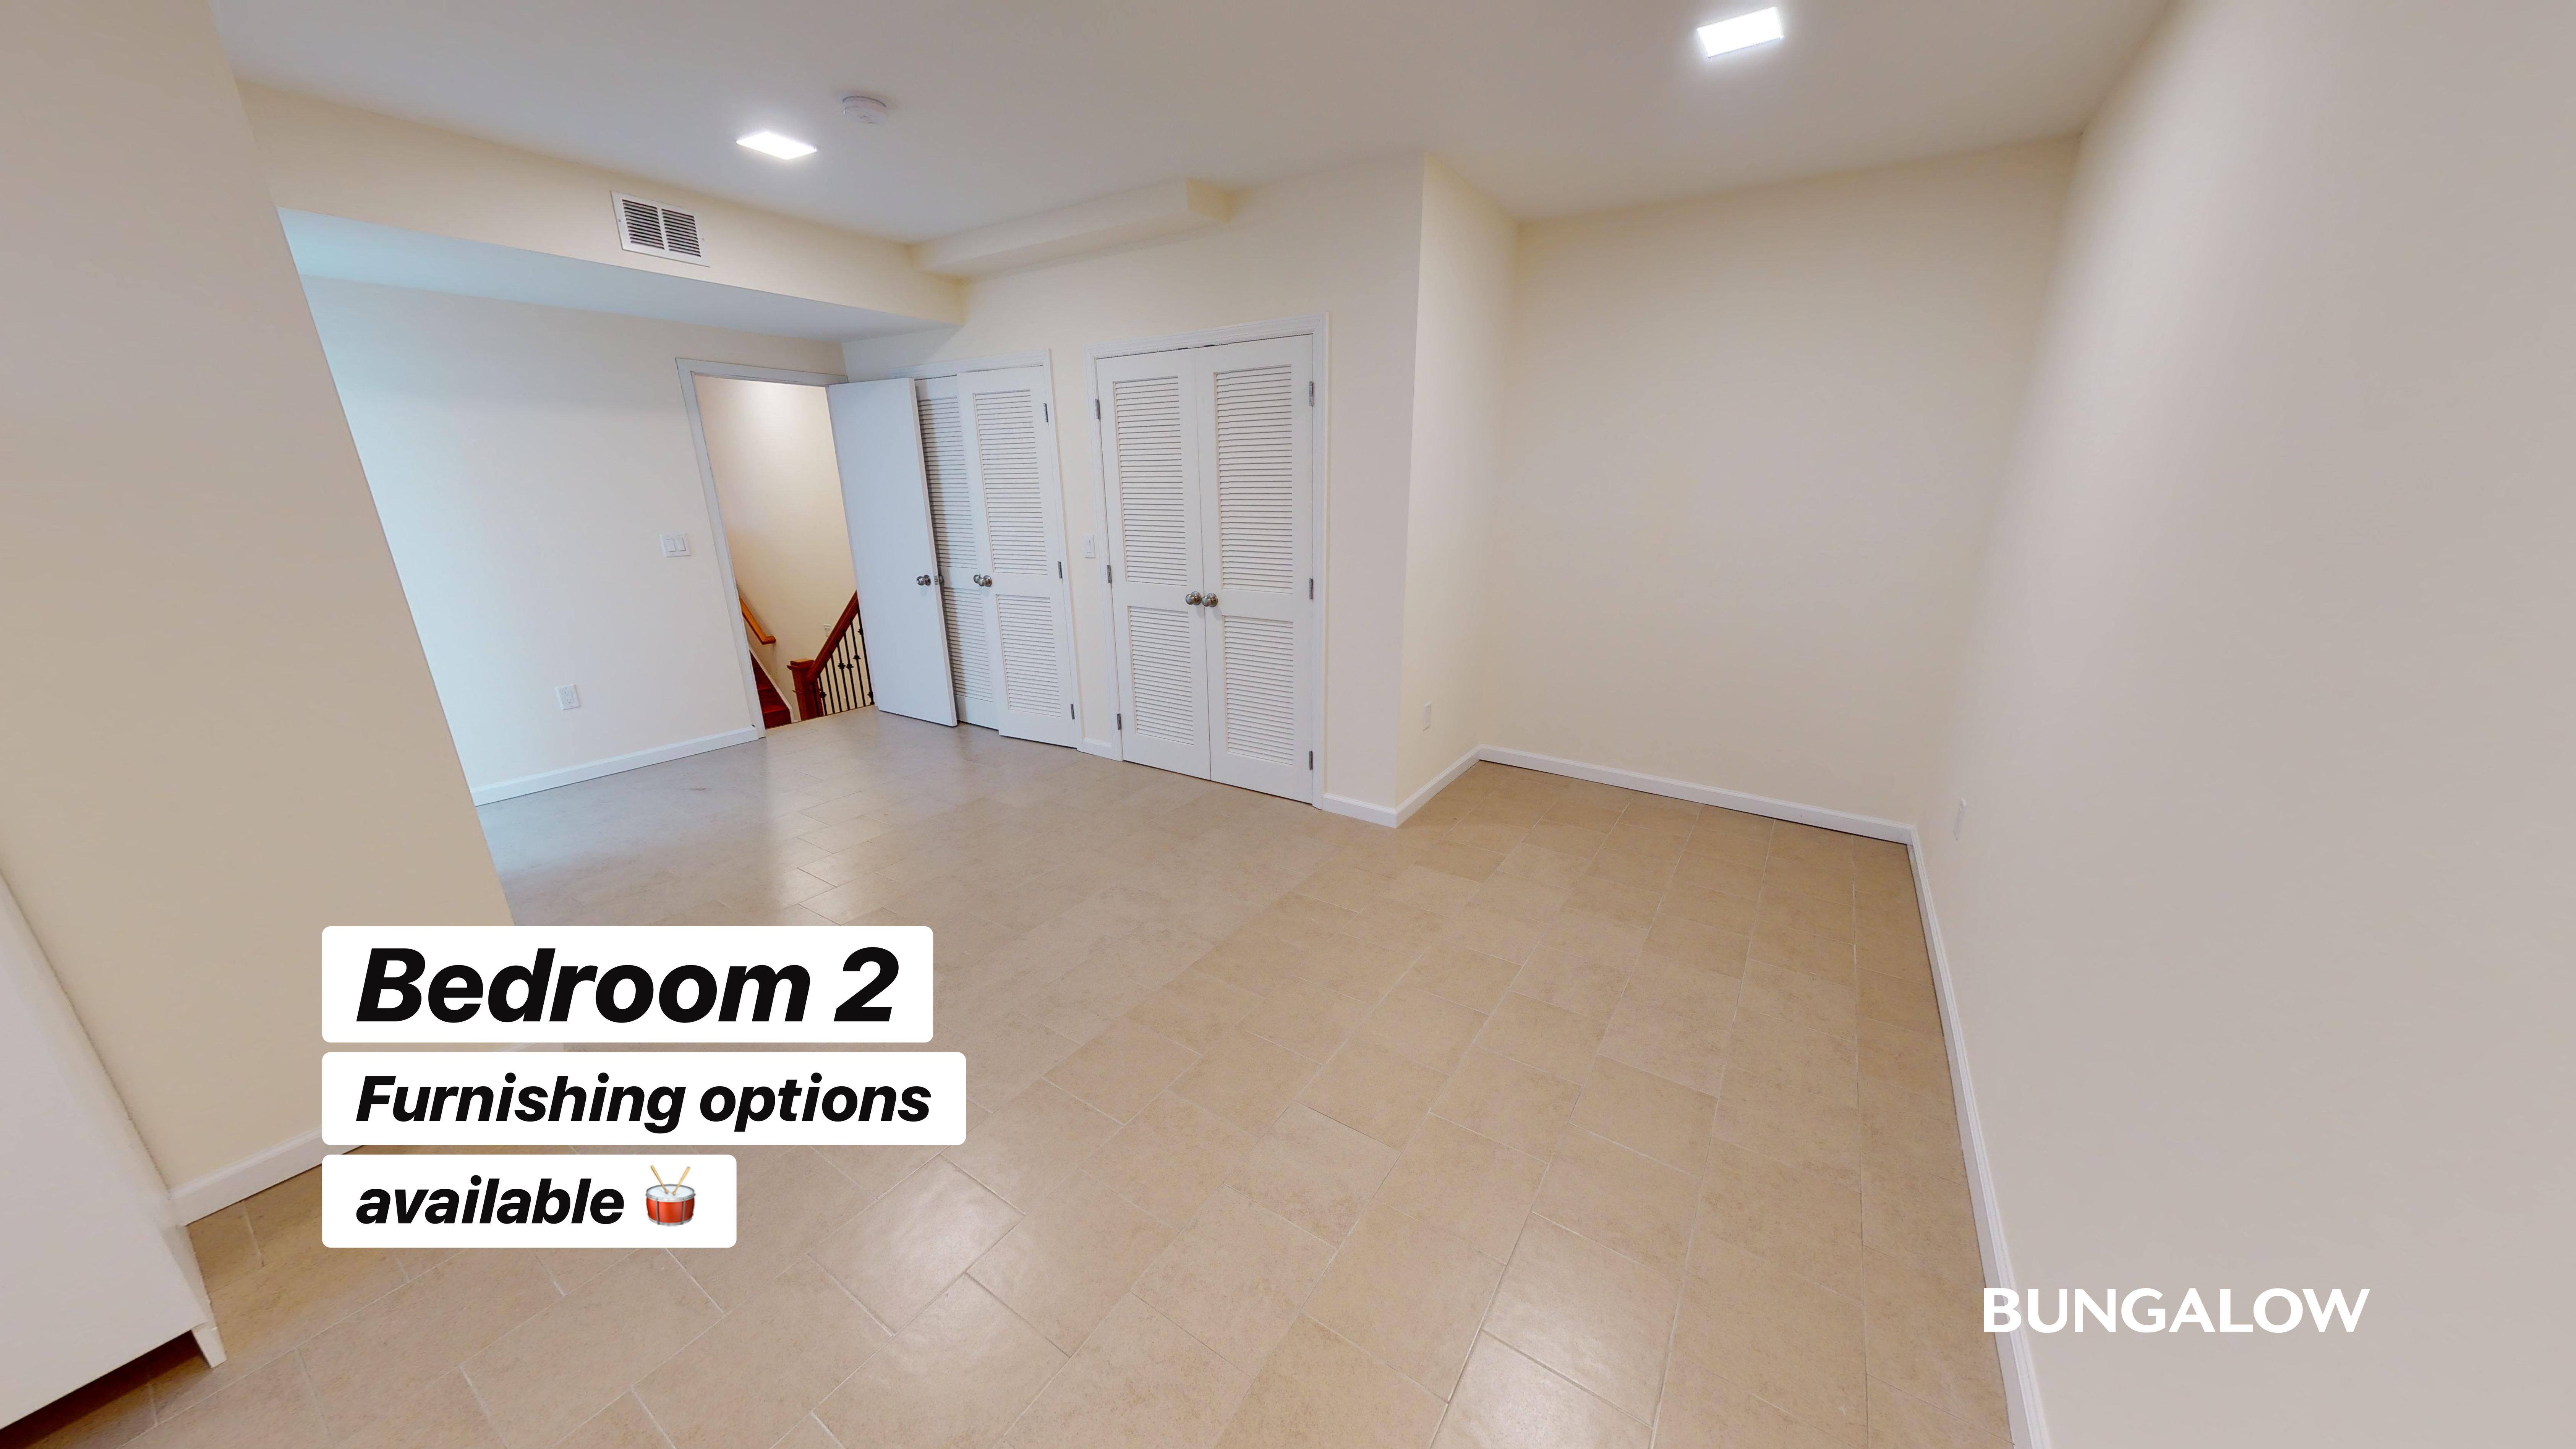 Private Bedroom in Brand New Jersey City Home off Tonnelle Ave for rent